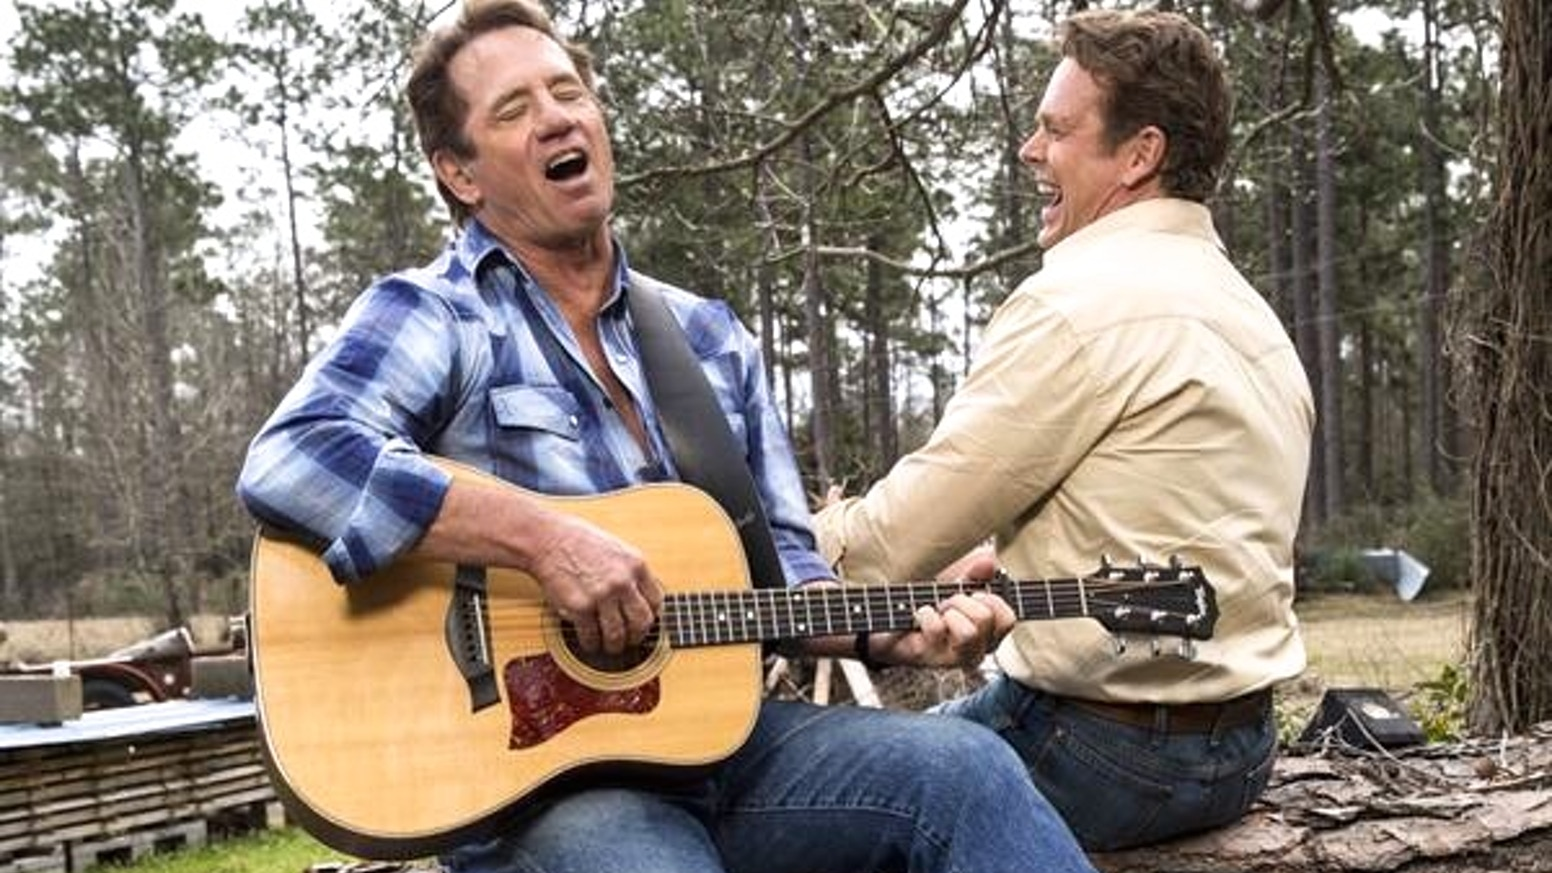 John Schneider And Tom Wopat Are Making A Christmas Album By Tom